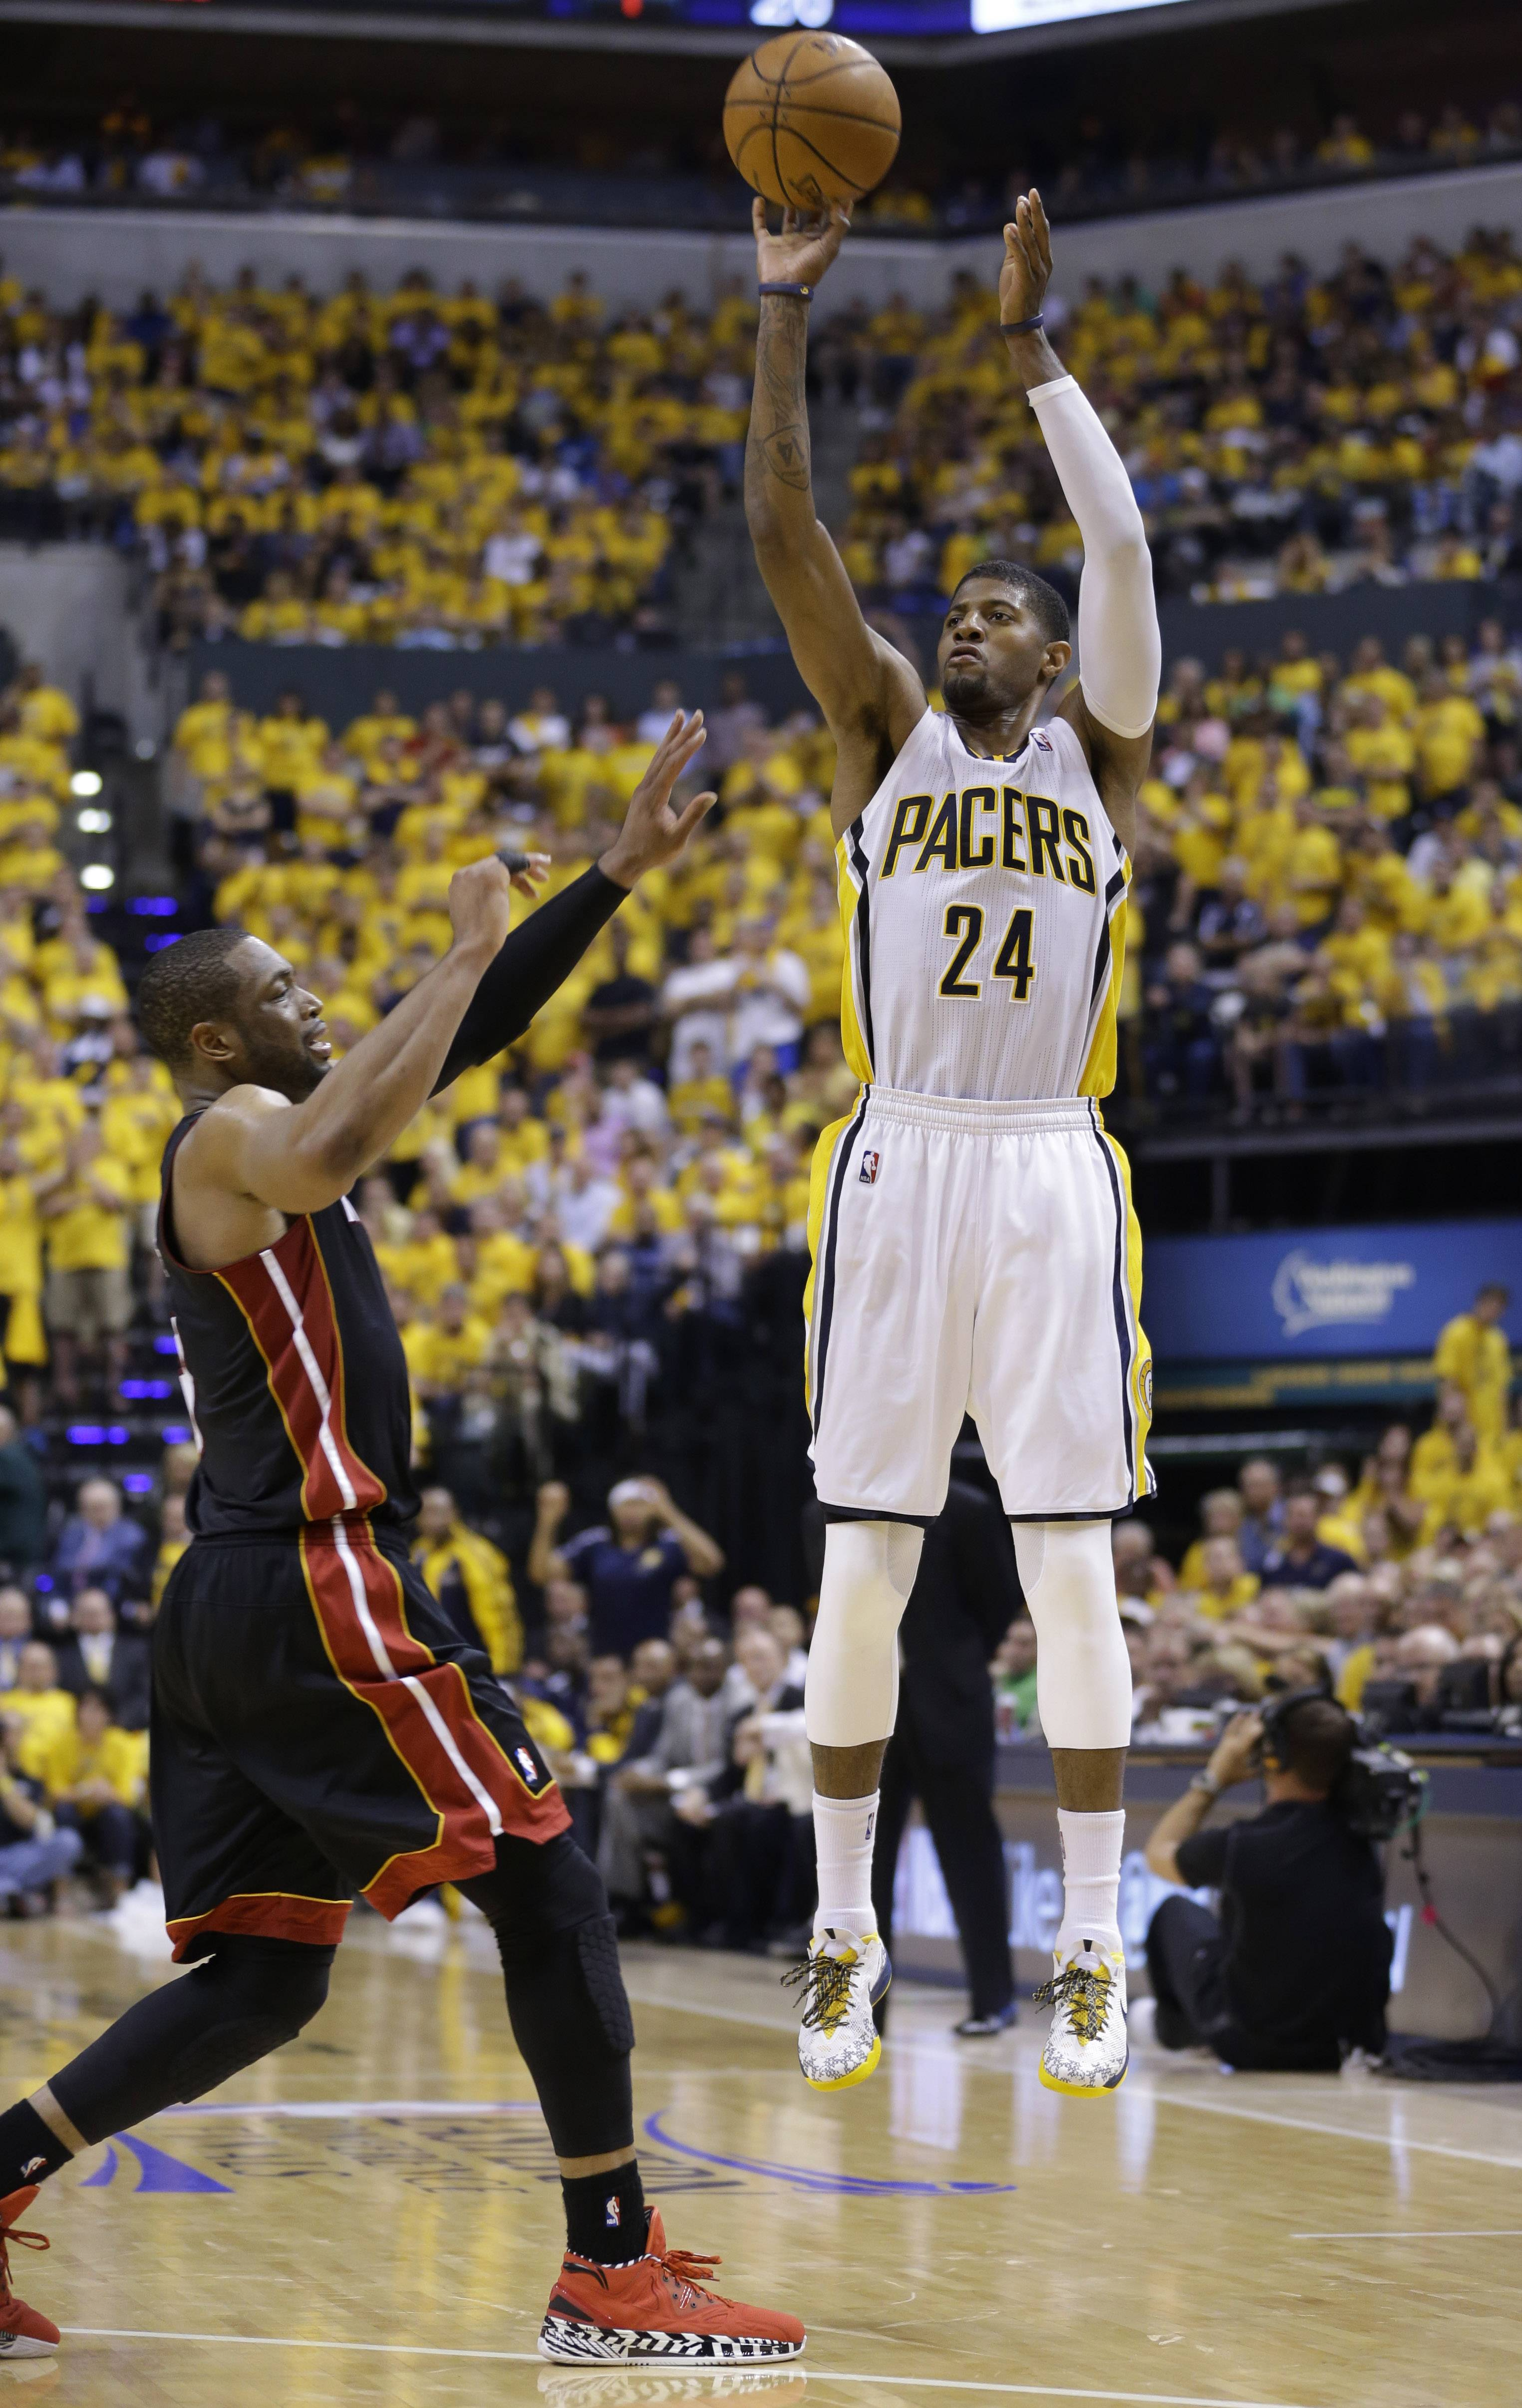 Paul George scored 31 of his 37 points in the second half Wednesday night and almost single-handedly kept the Indiana Pacers alive in the Eastern Conference finals with a 93-90 victory over the Miami Heat.